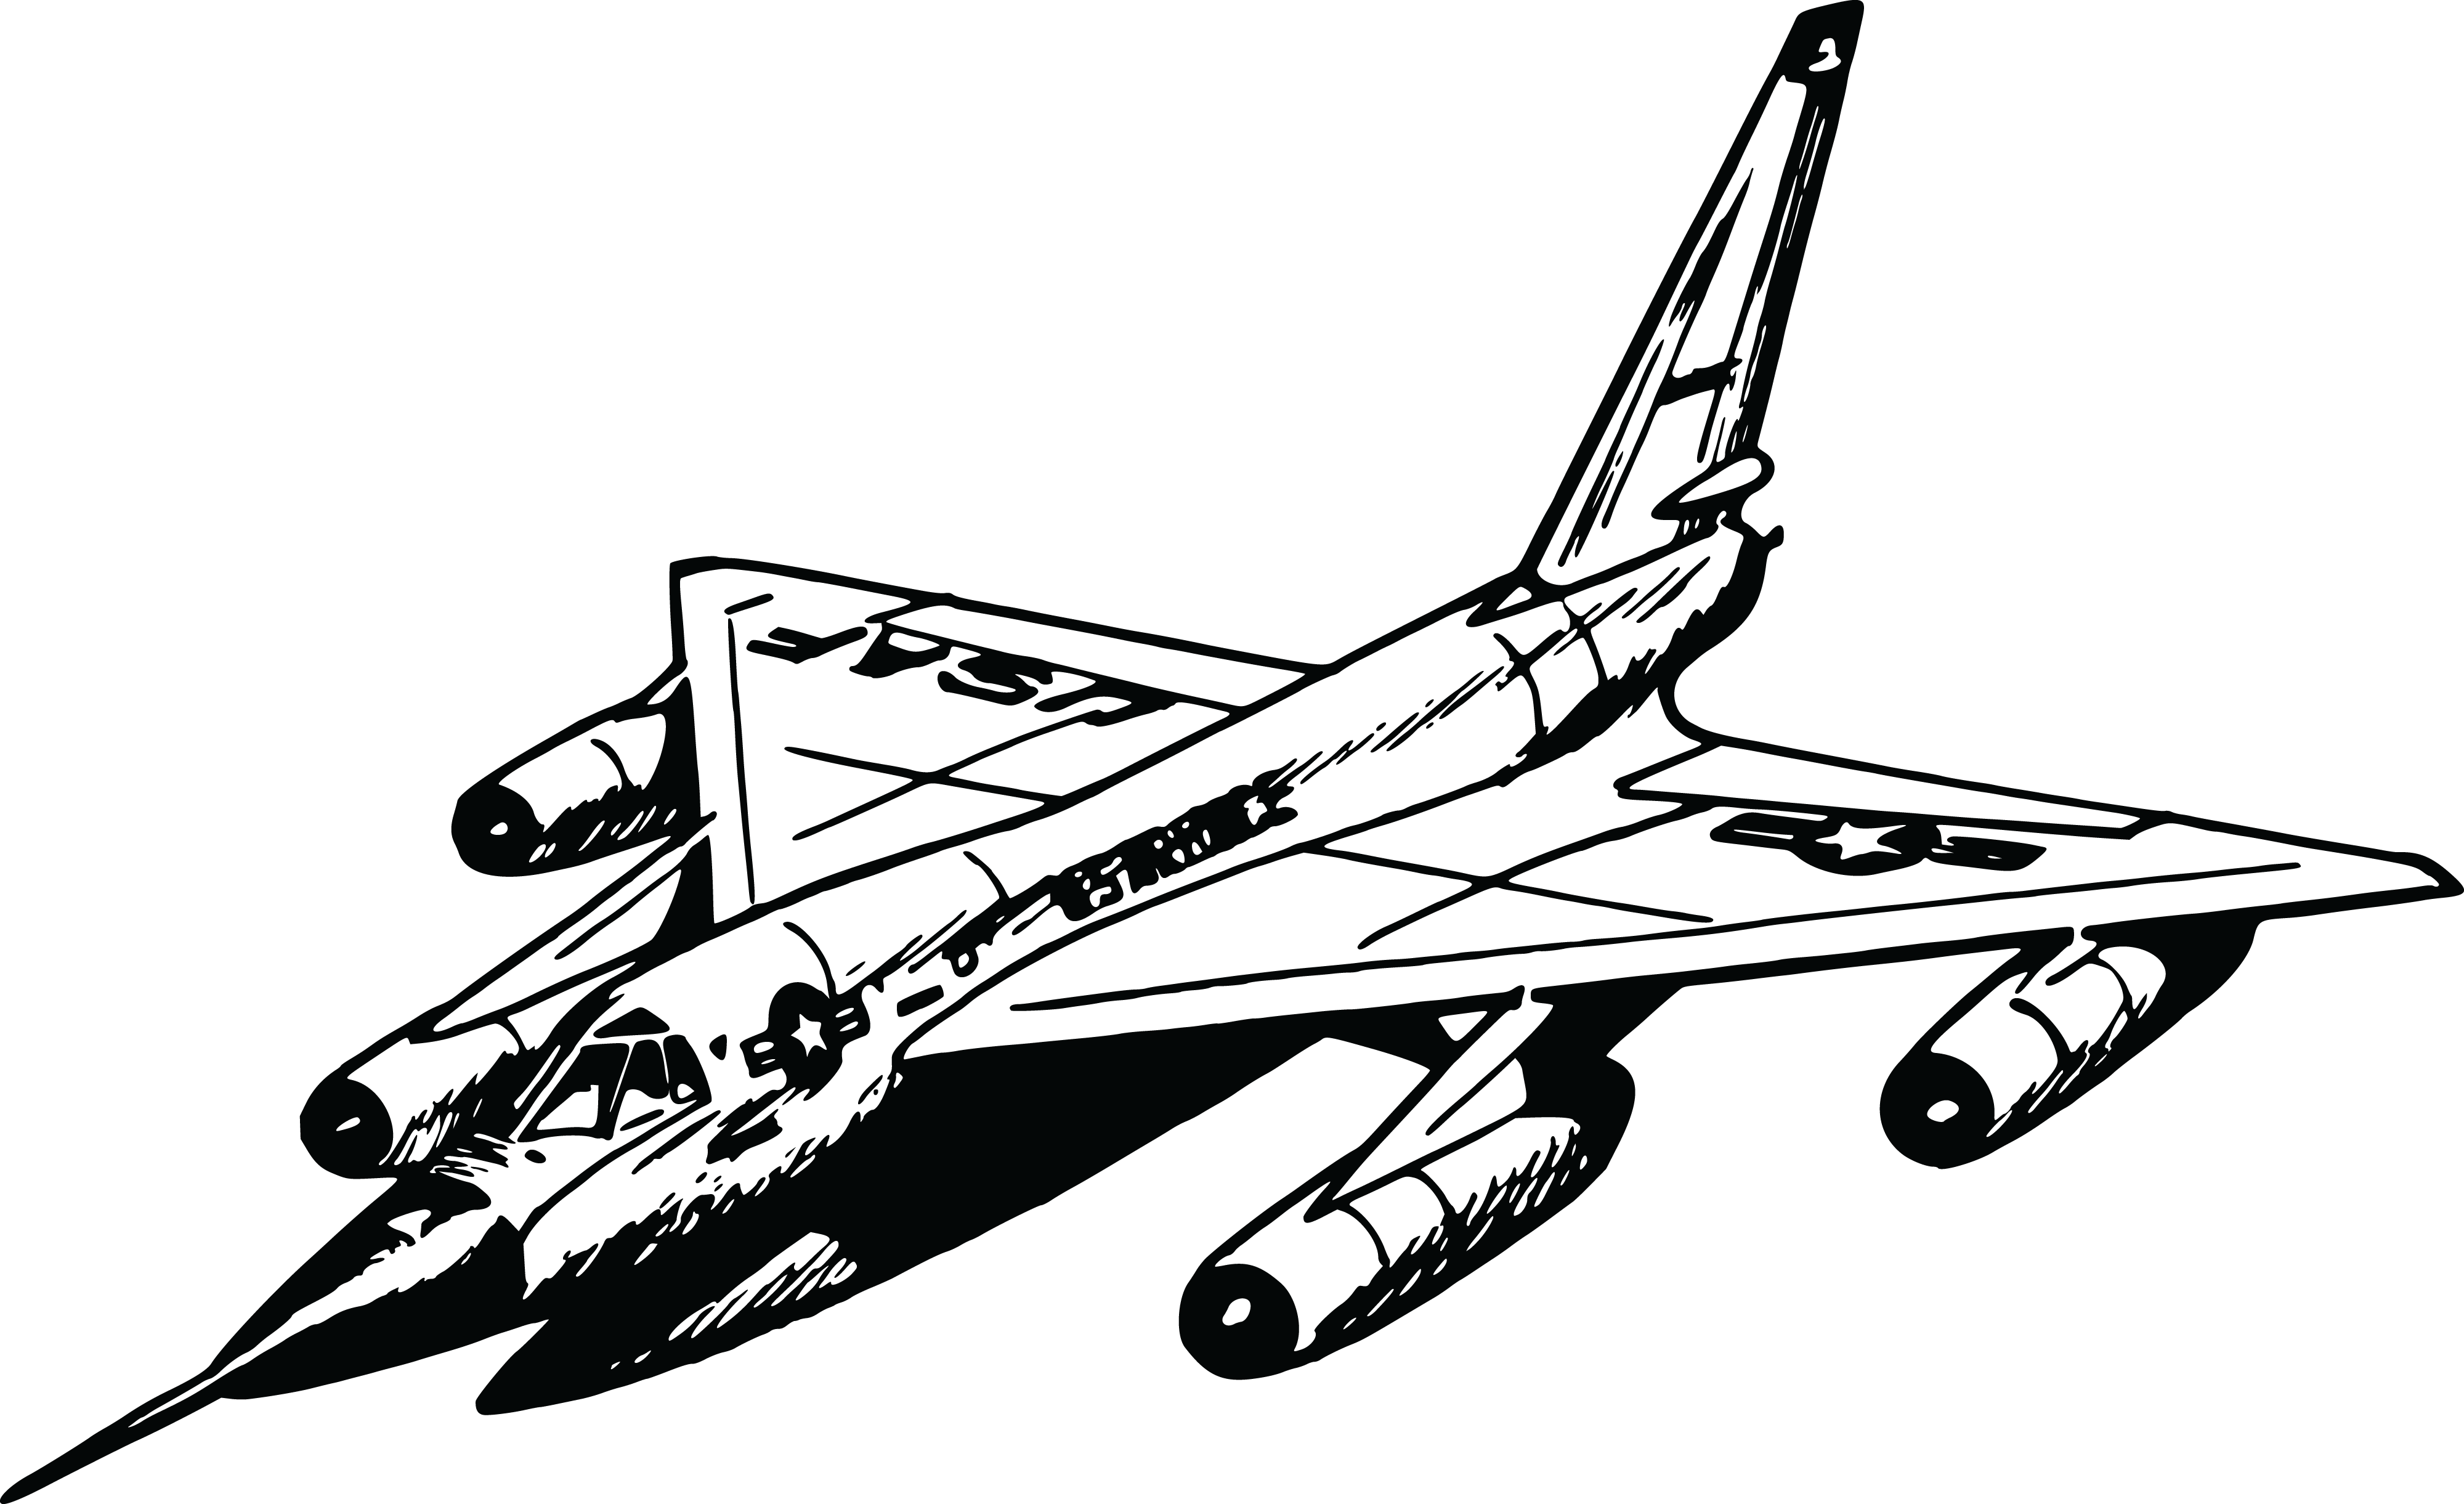 military airplane coloring pages army jets coloring pages airplane coloring pages pages military coloring airplane